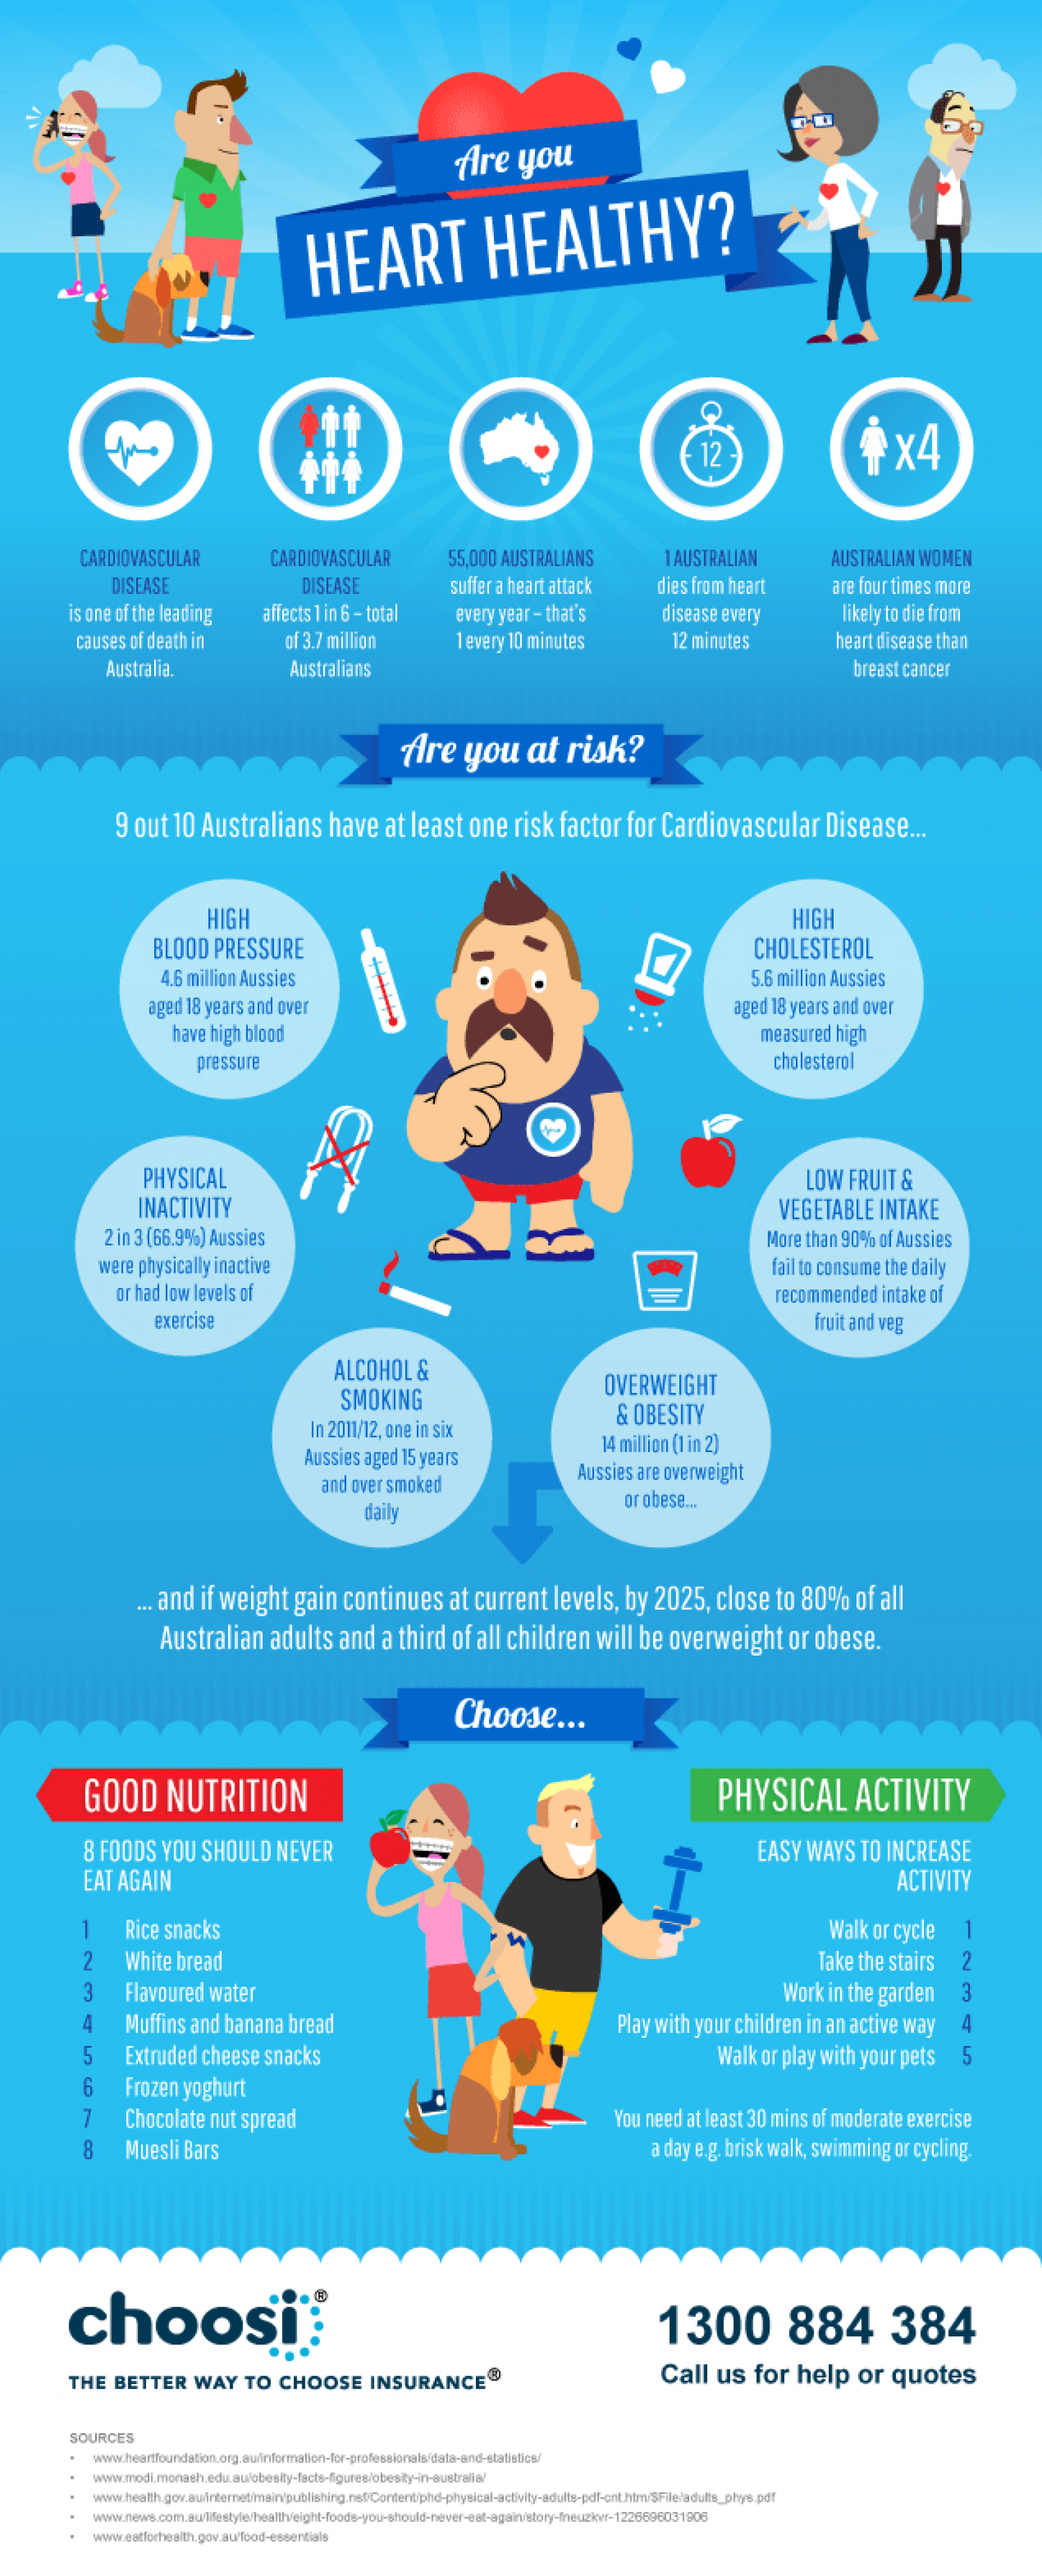 Are You Heart Healthy? Infographic